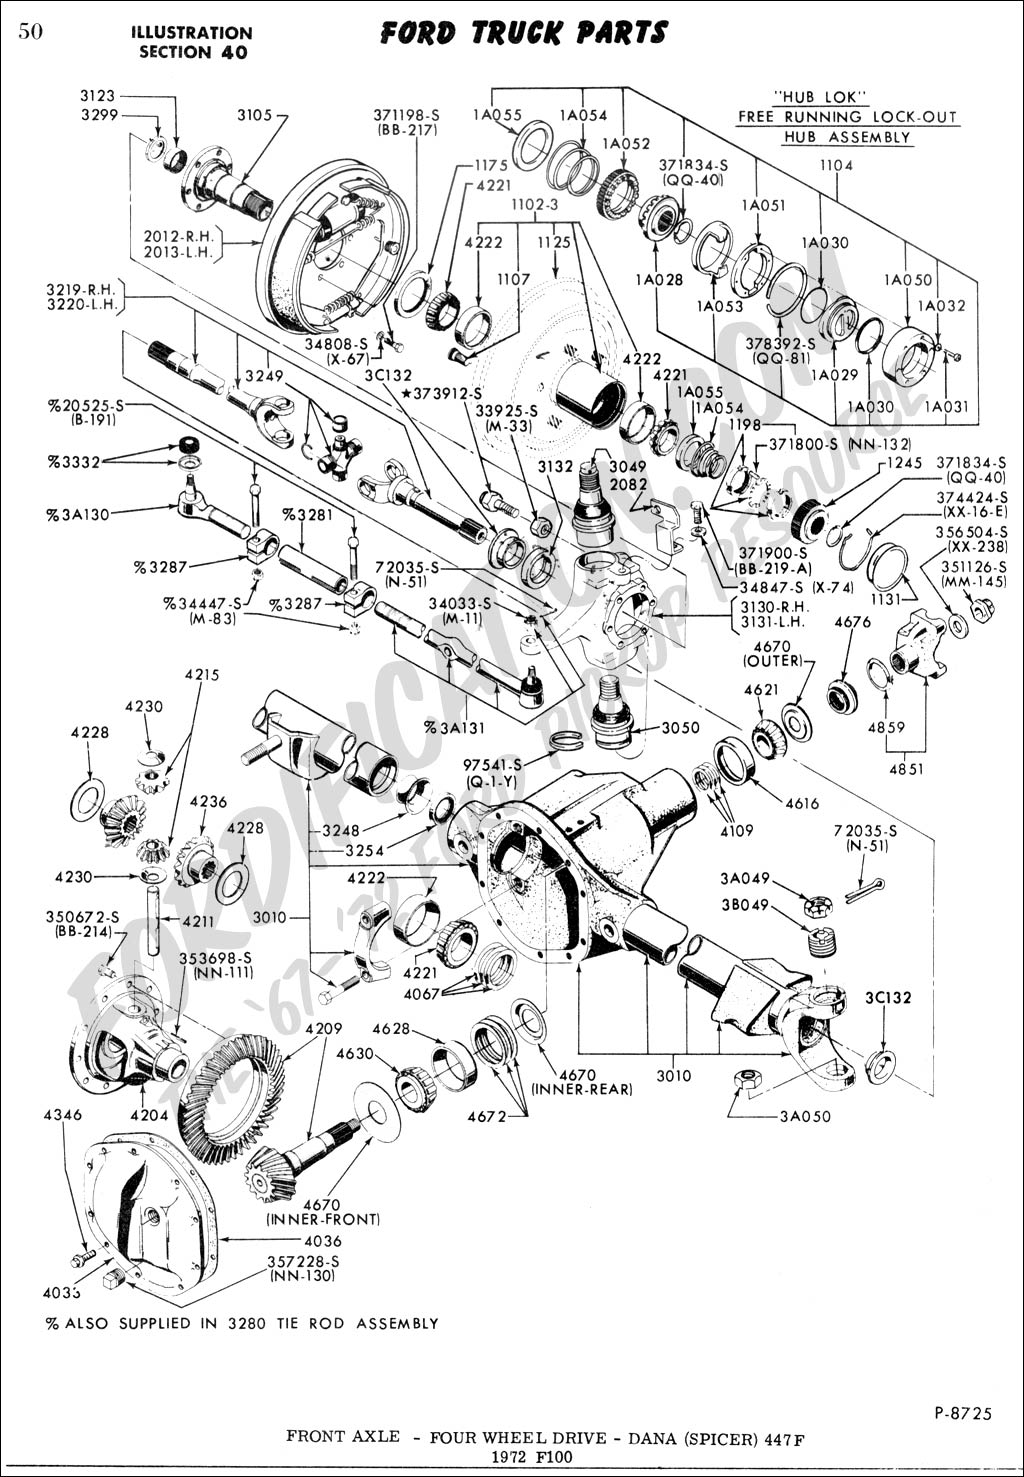 Pedalbracket likewise 320550 46 Emergency Brakes besides Front Suspension together with P 0900c15280262050 also Alfa Romeo 75 America. on 2004 ford f150 front end diagram